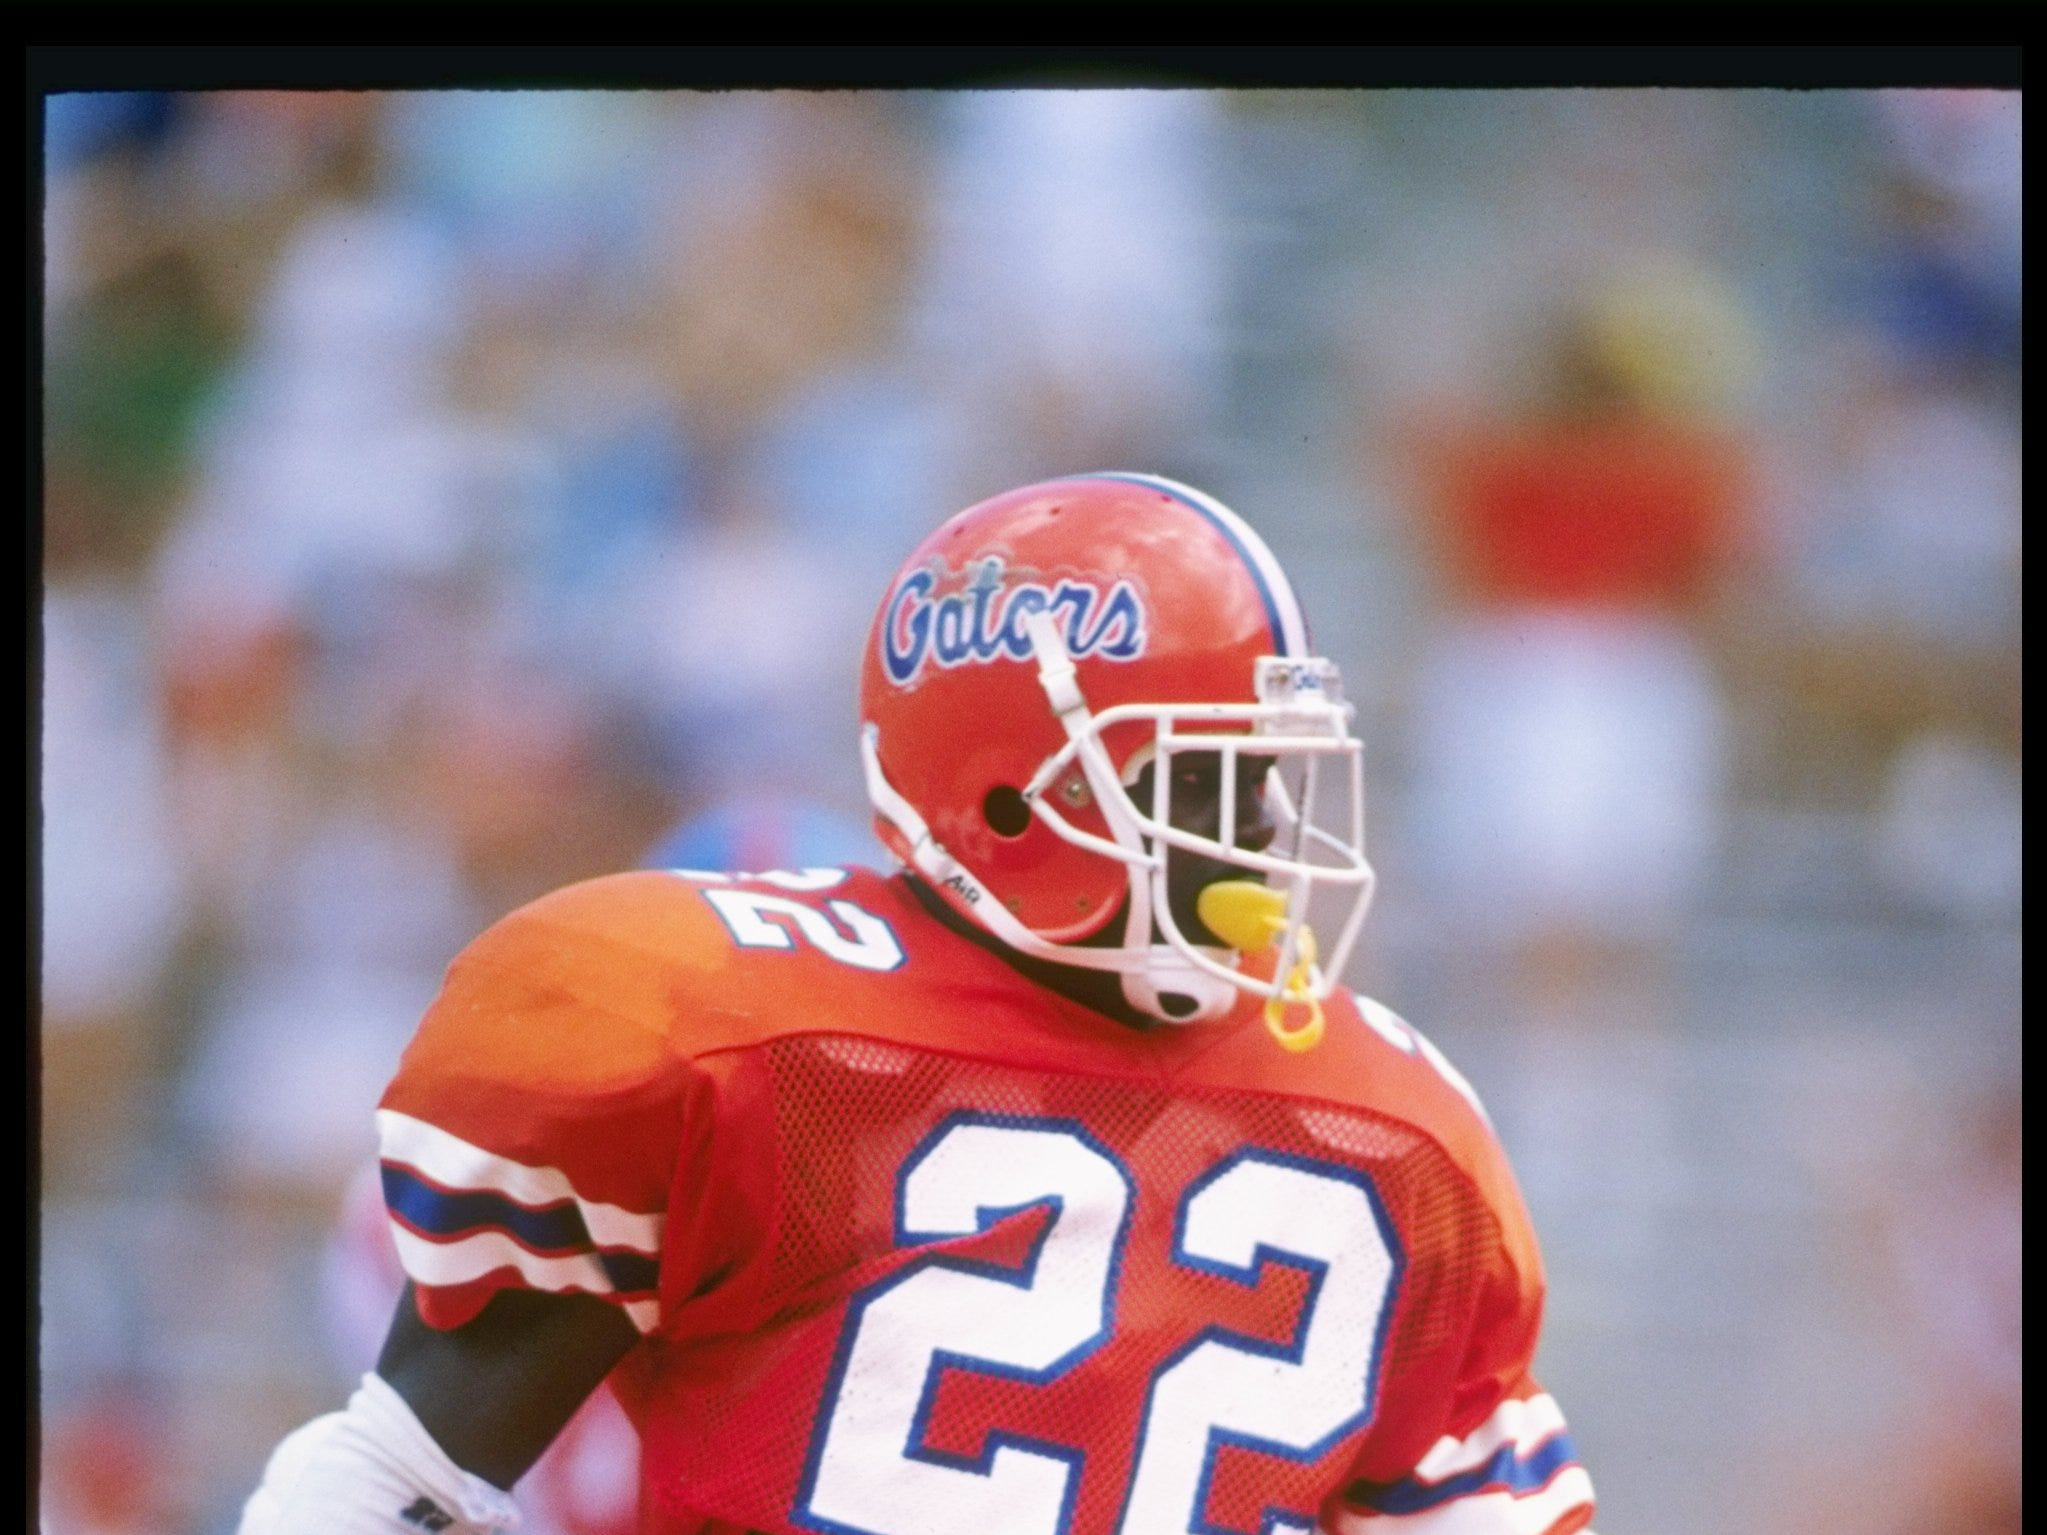 Running back Emmitt Smith of the Florida Gators walks down the field during a game against the Mississippi Rebels at Florida Field in Gainesville, Florida.  Mississippi won the game 24-19. Mandatory Credit: Allen Dean Steele  /Allsport